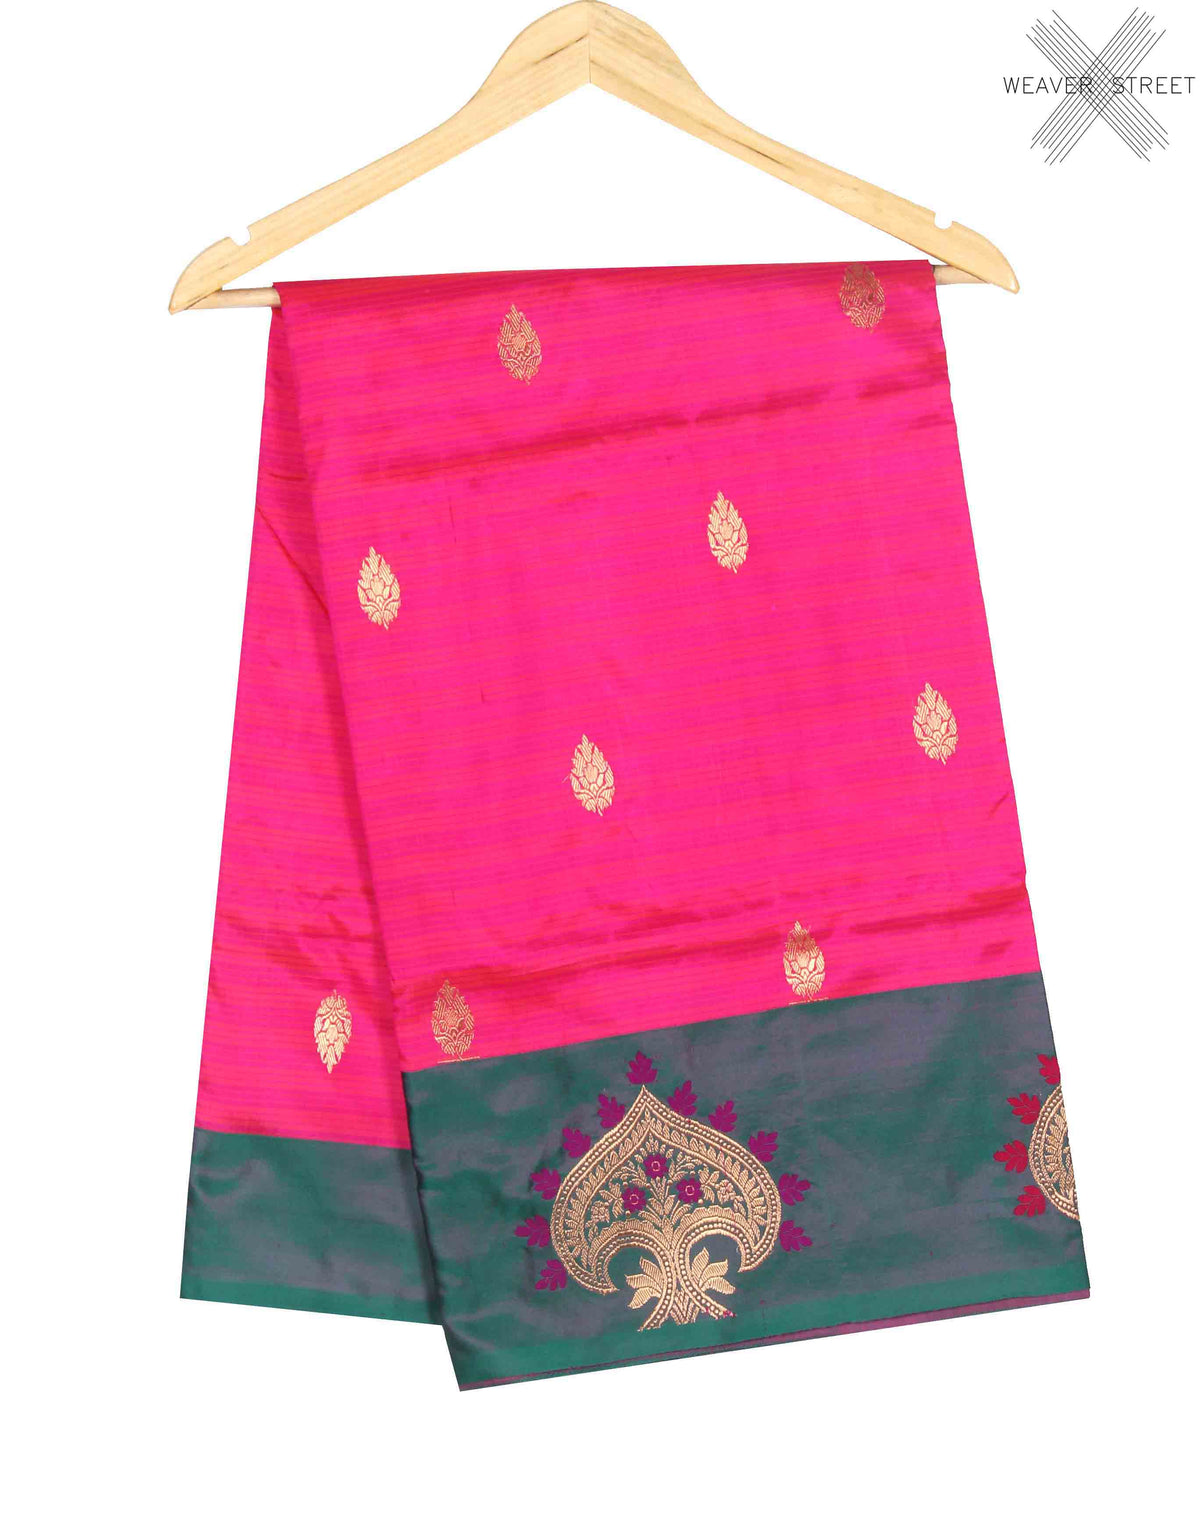 Pink Katan Silk Handwoven Banarasi saree with kalgi border (1) Main